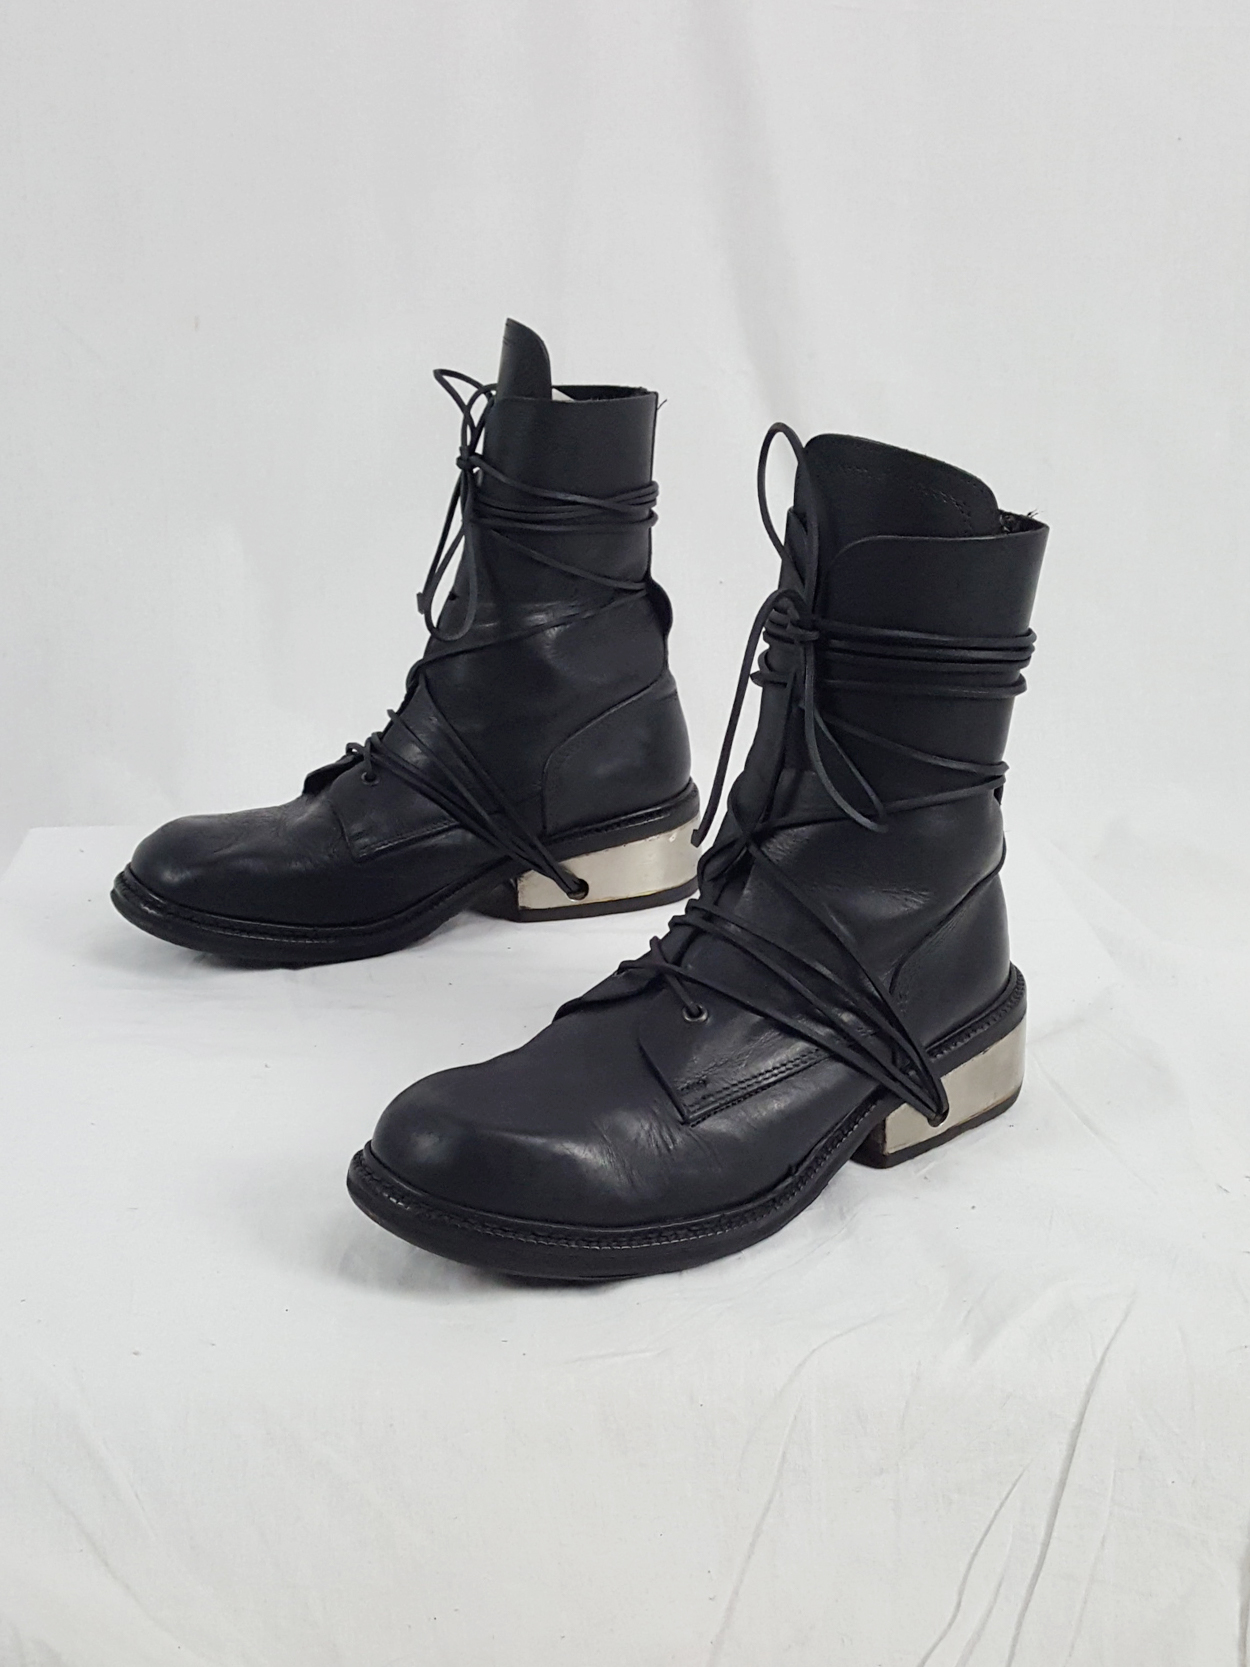 vaniitas vintage Dirk Bikkembergs black tall boots with laces through the metal heel 1990S 90S 175430